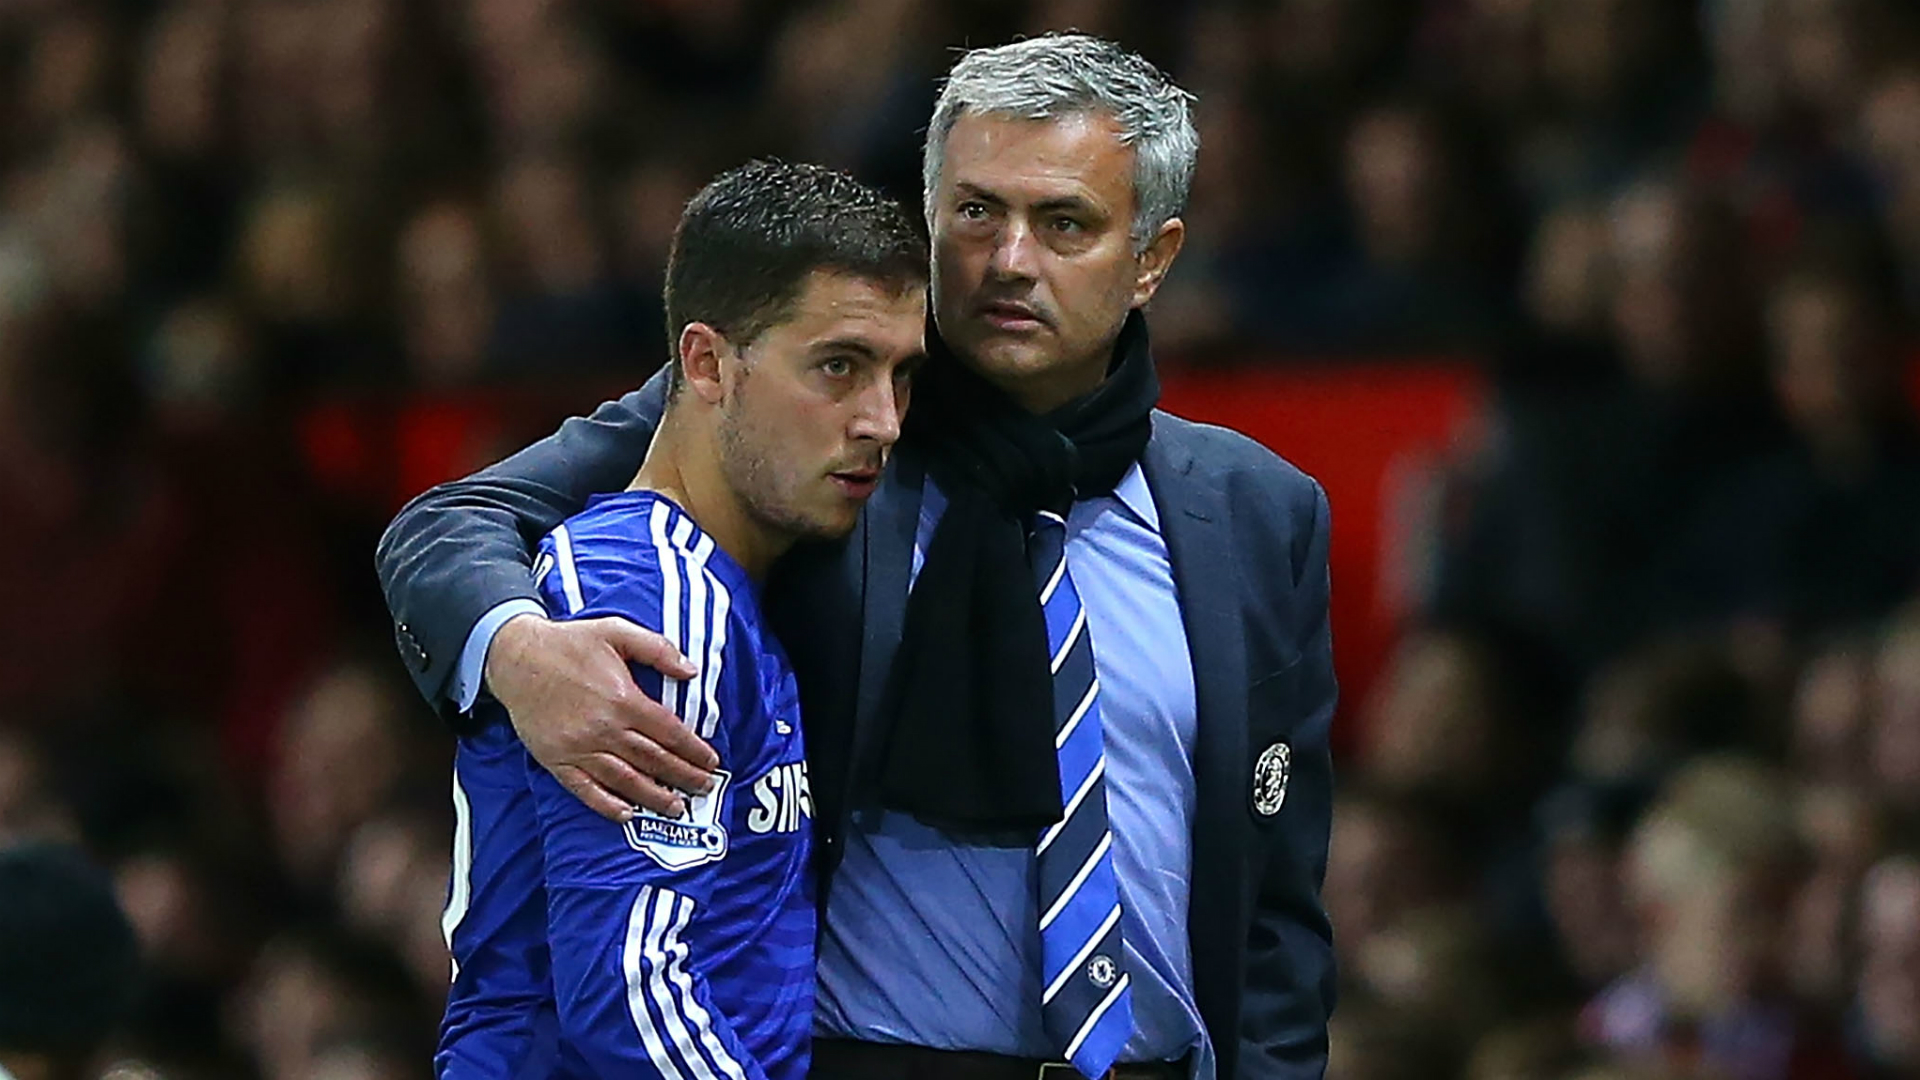 Hazard: Mourinho 'special' but Sarri's style suits me